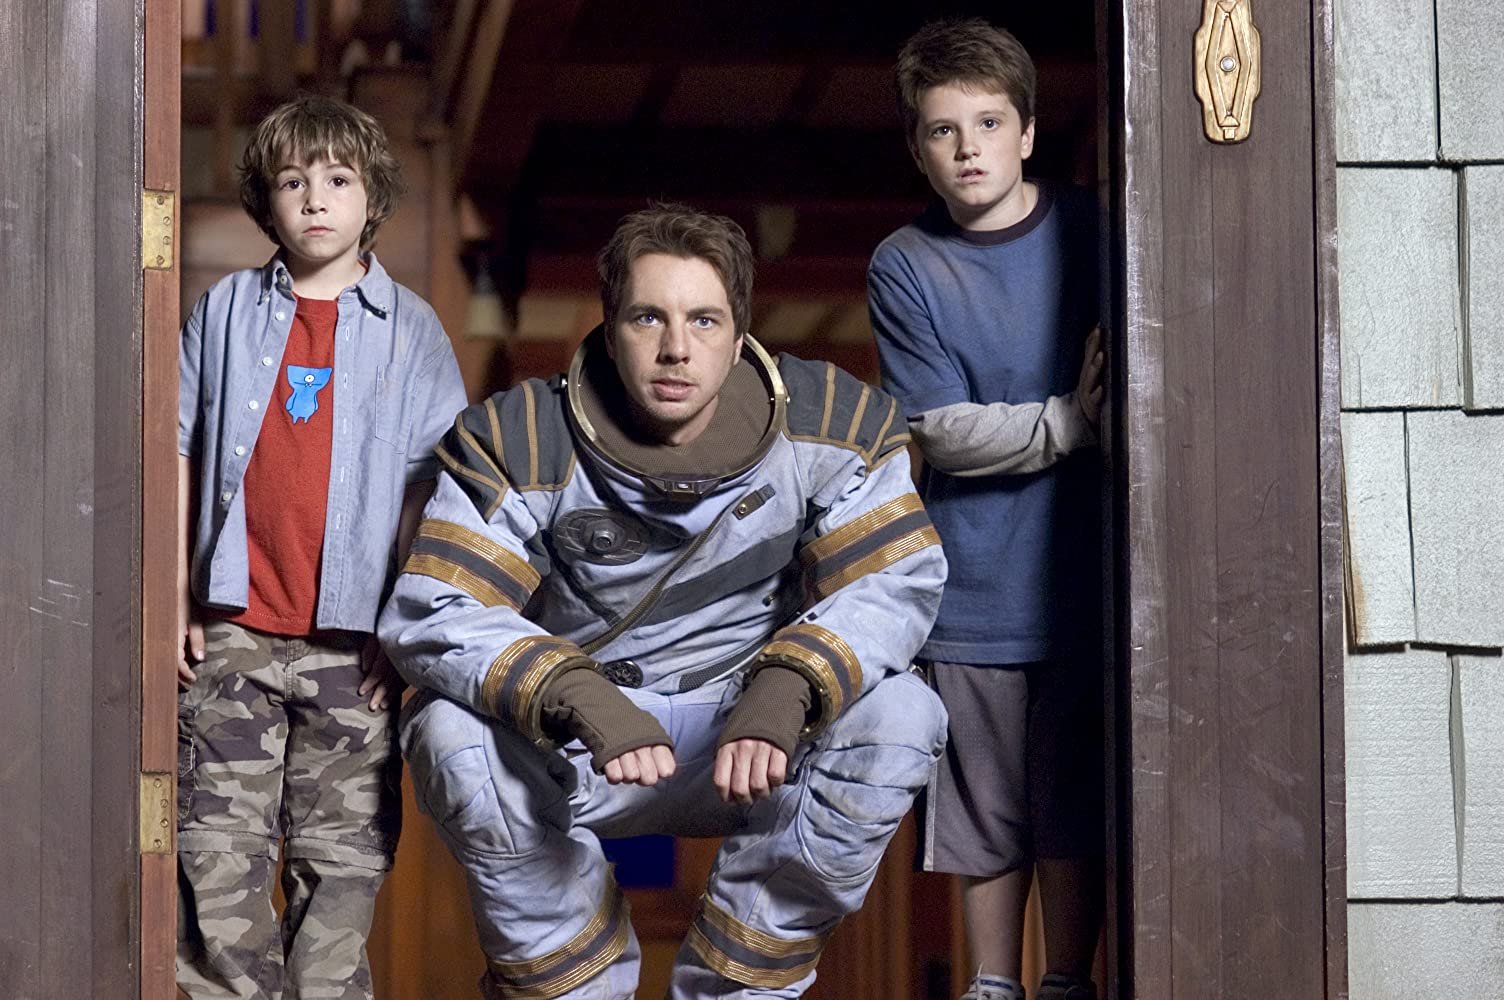 Dax Shepard, Josh Hutcherson, and Jonah Bobo in Zathura: A Space Adventure (2005)